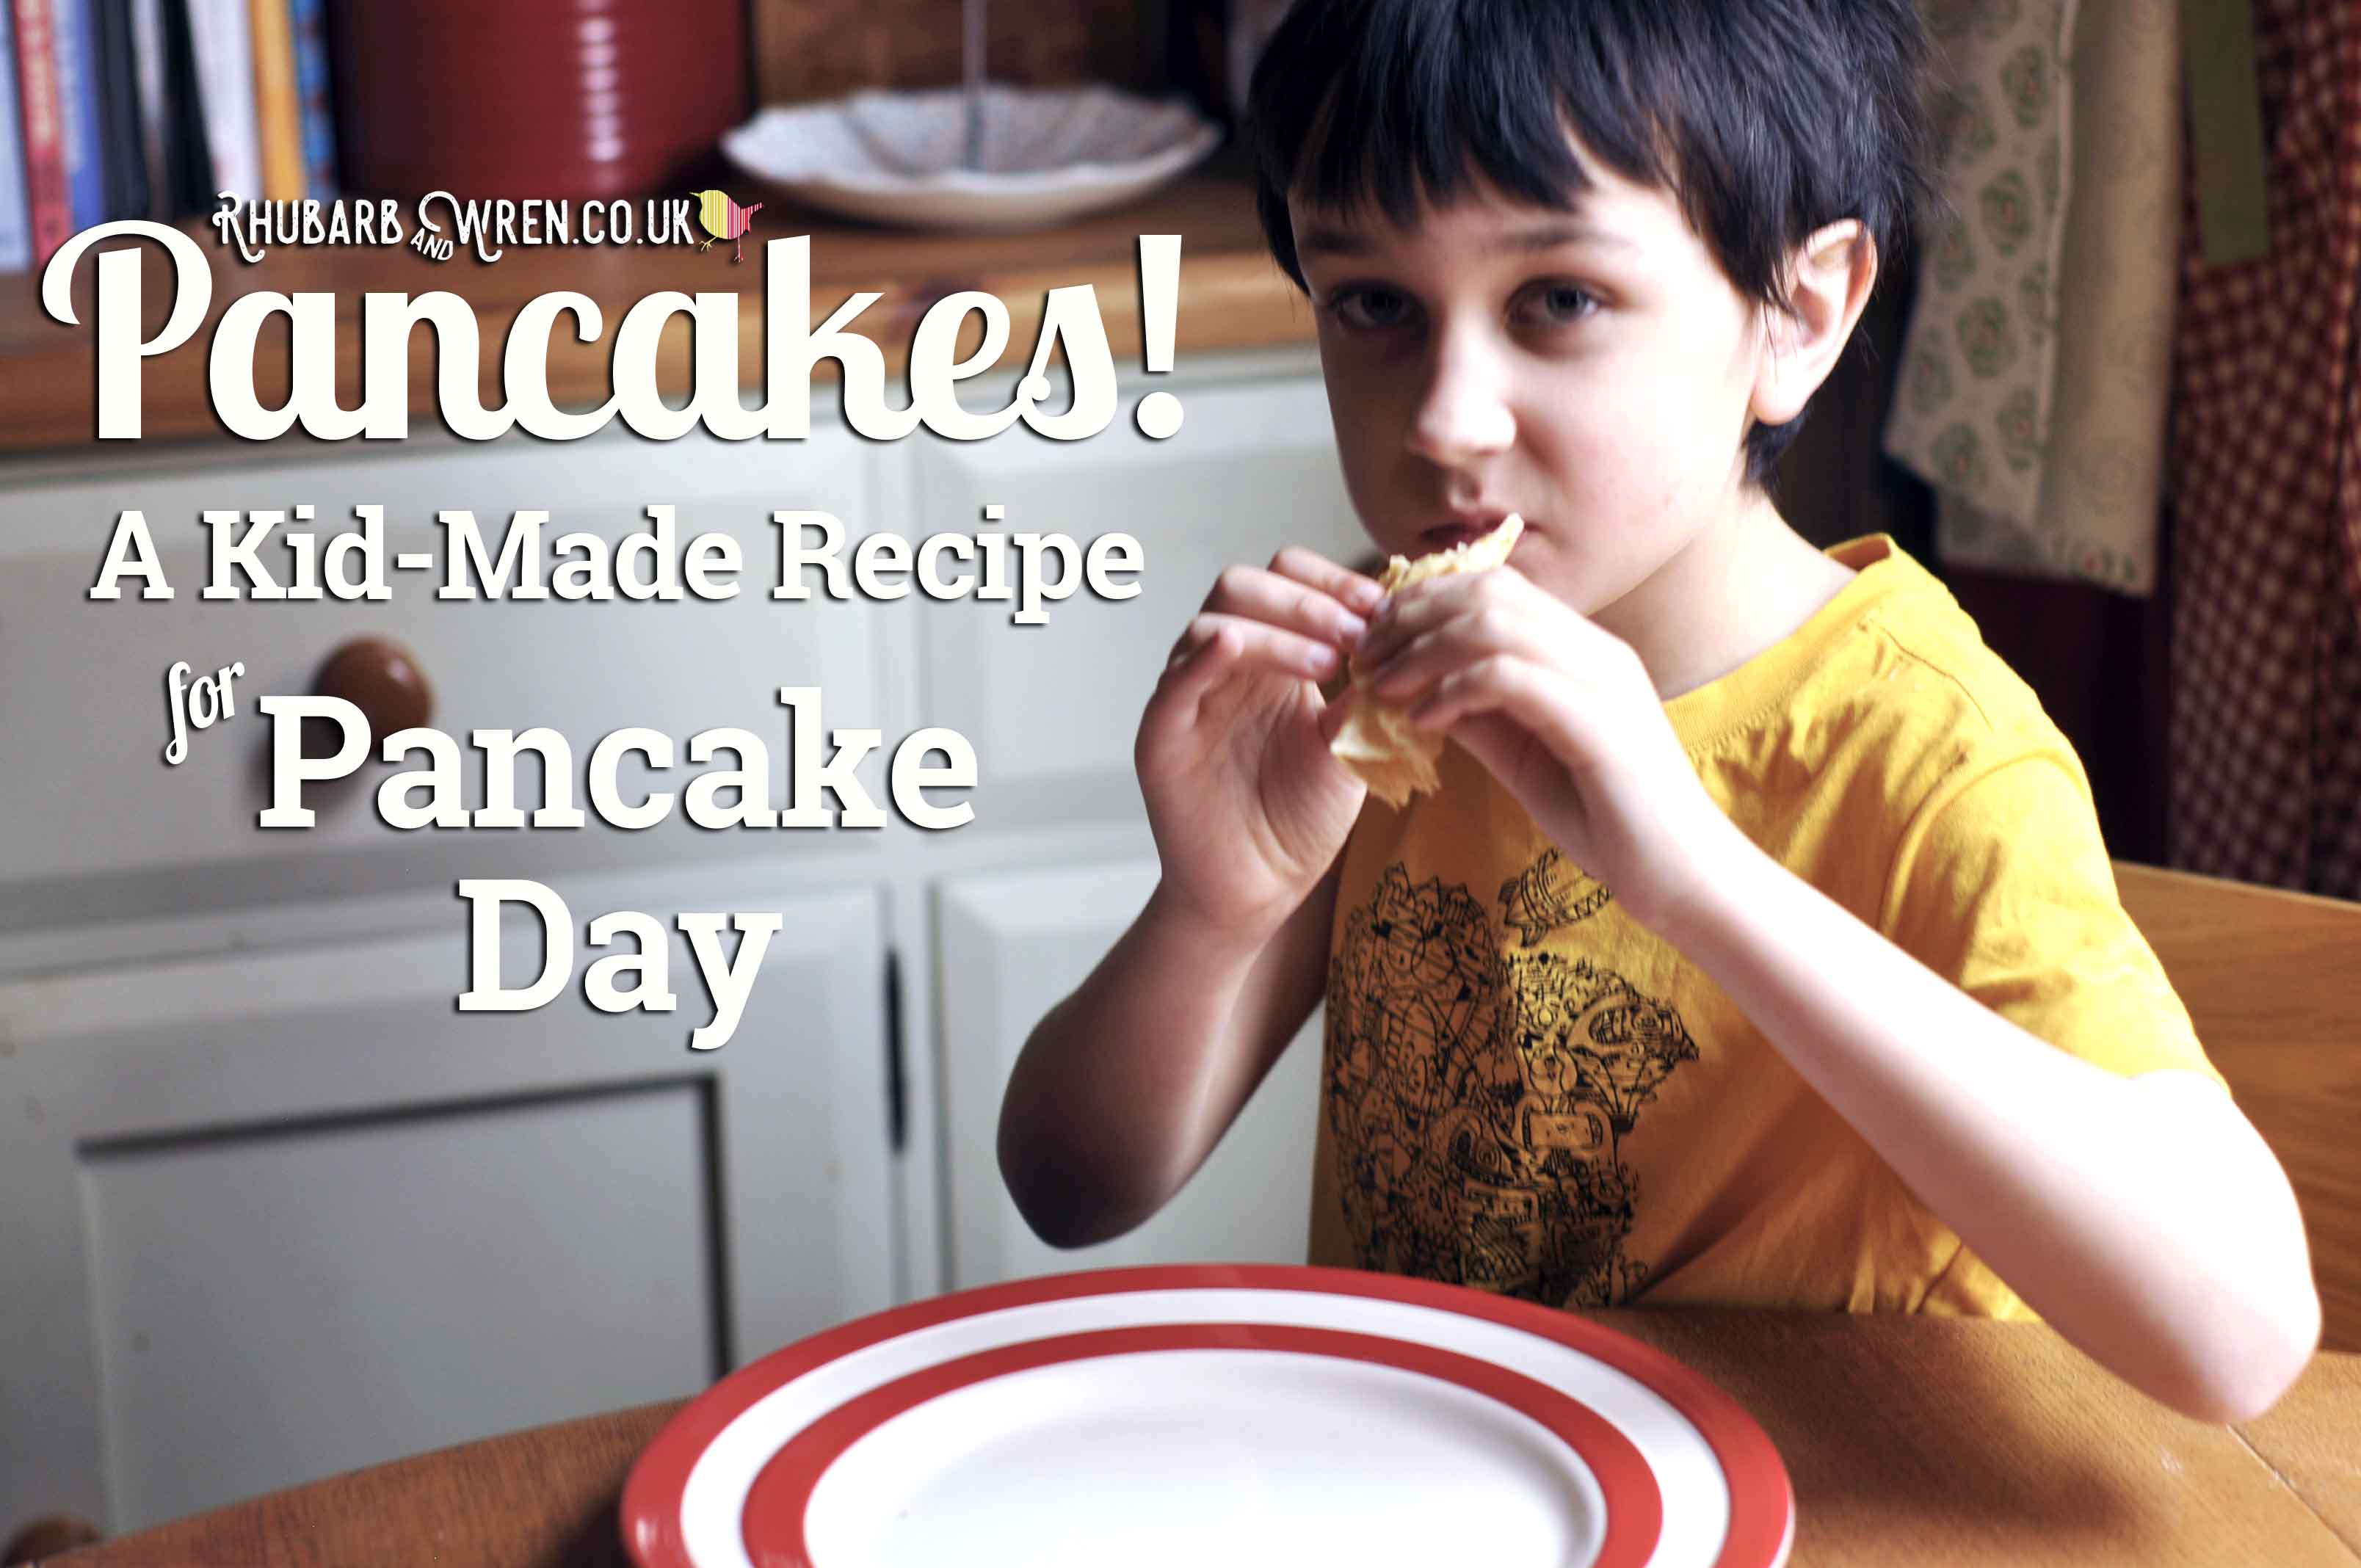 Pancakes! A Kid-Made Recipe for Pancake Day